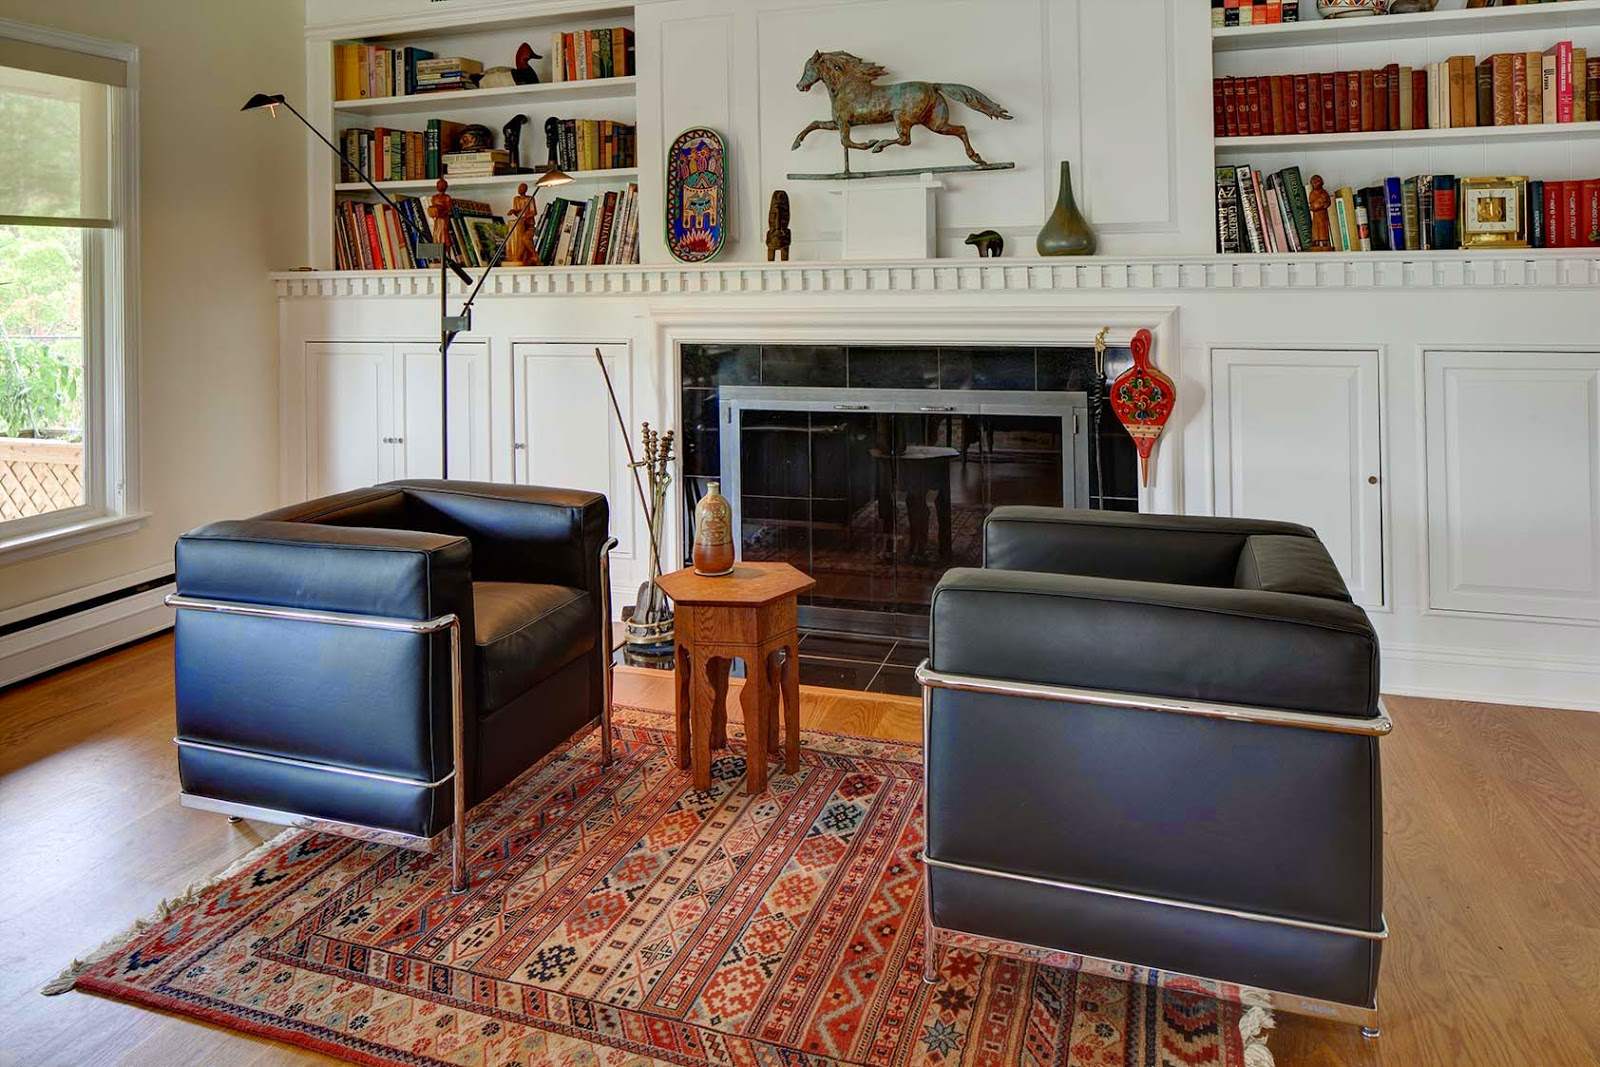 midcentury modern LC3 chairs www.roomsrevamped.com